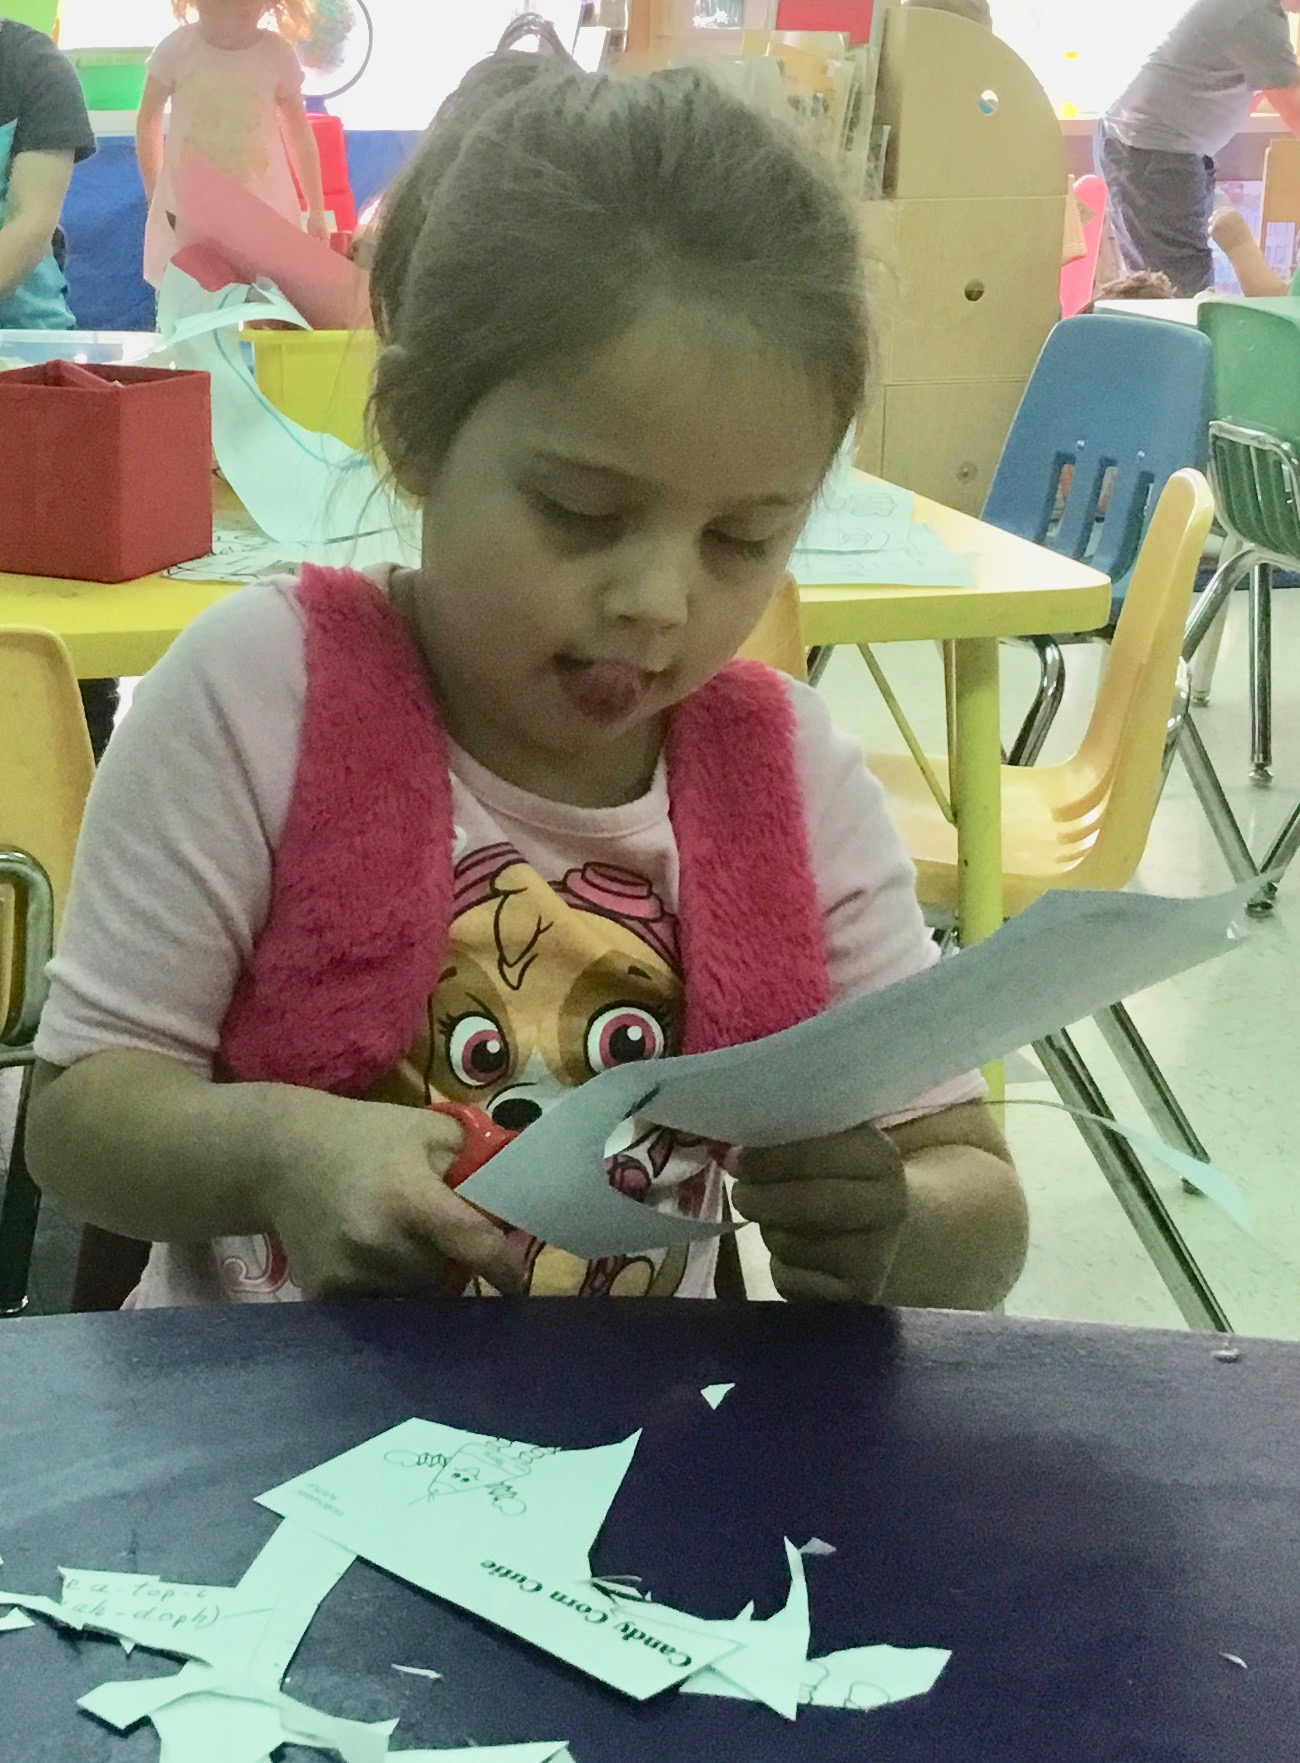 A Pre-K student concentrating really hard on using her donated scissors.